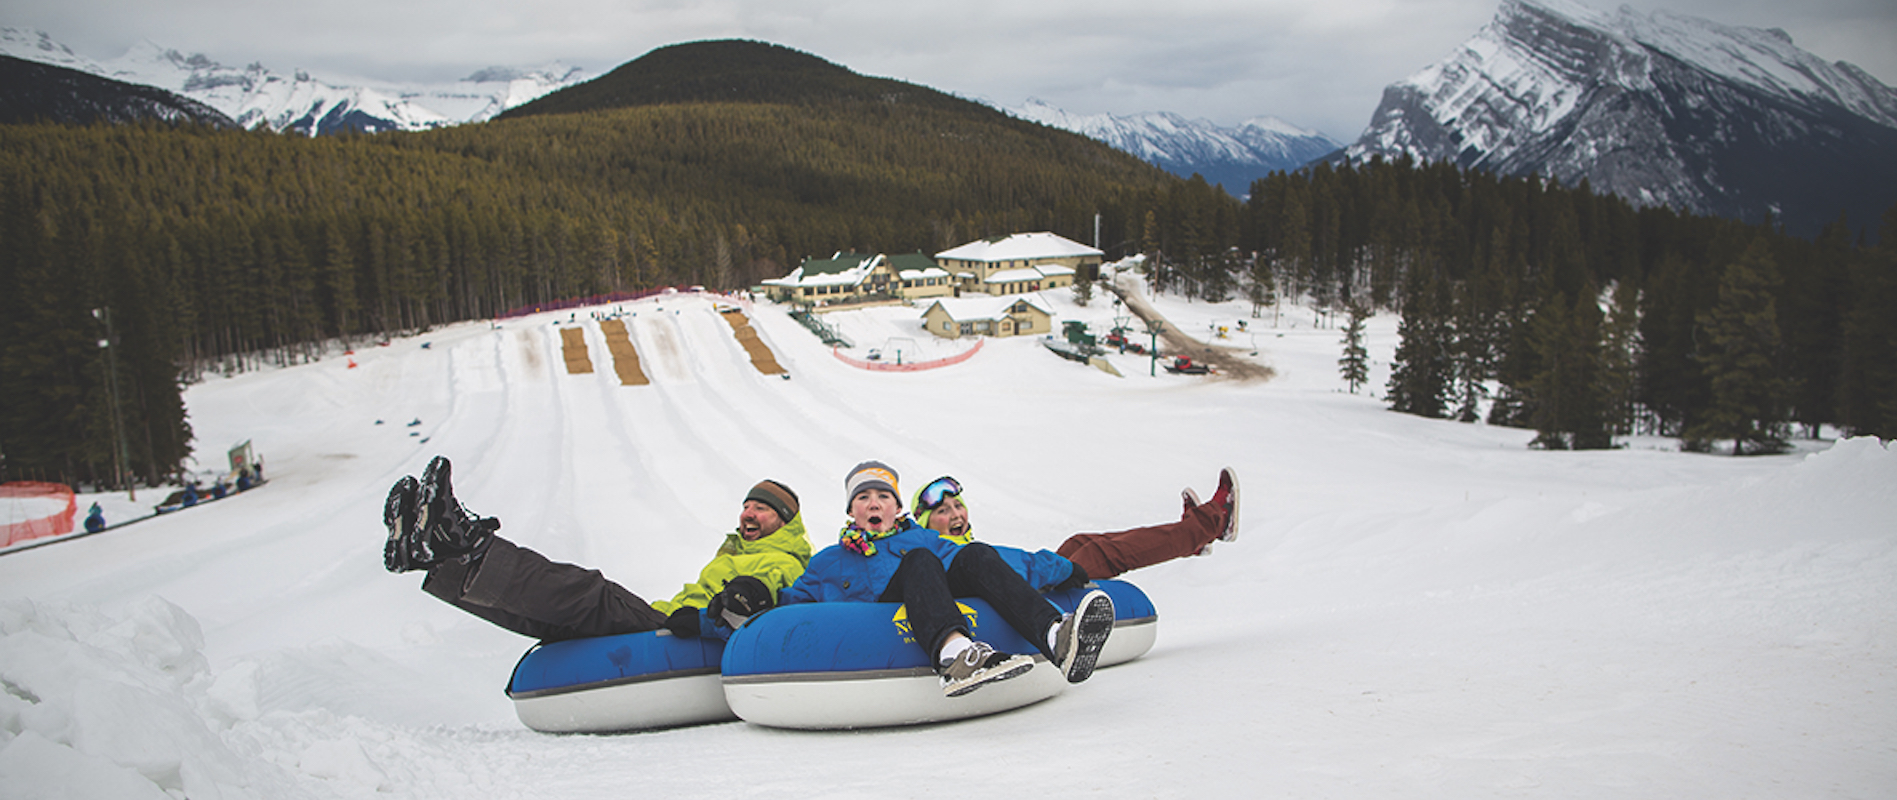 Tubing at Mt Norquay in Banff, Canadian Rockies